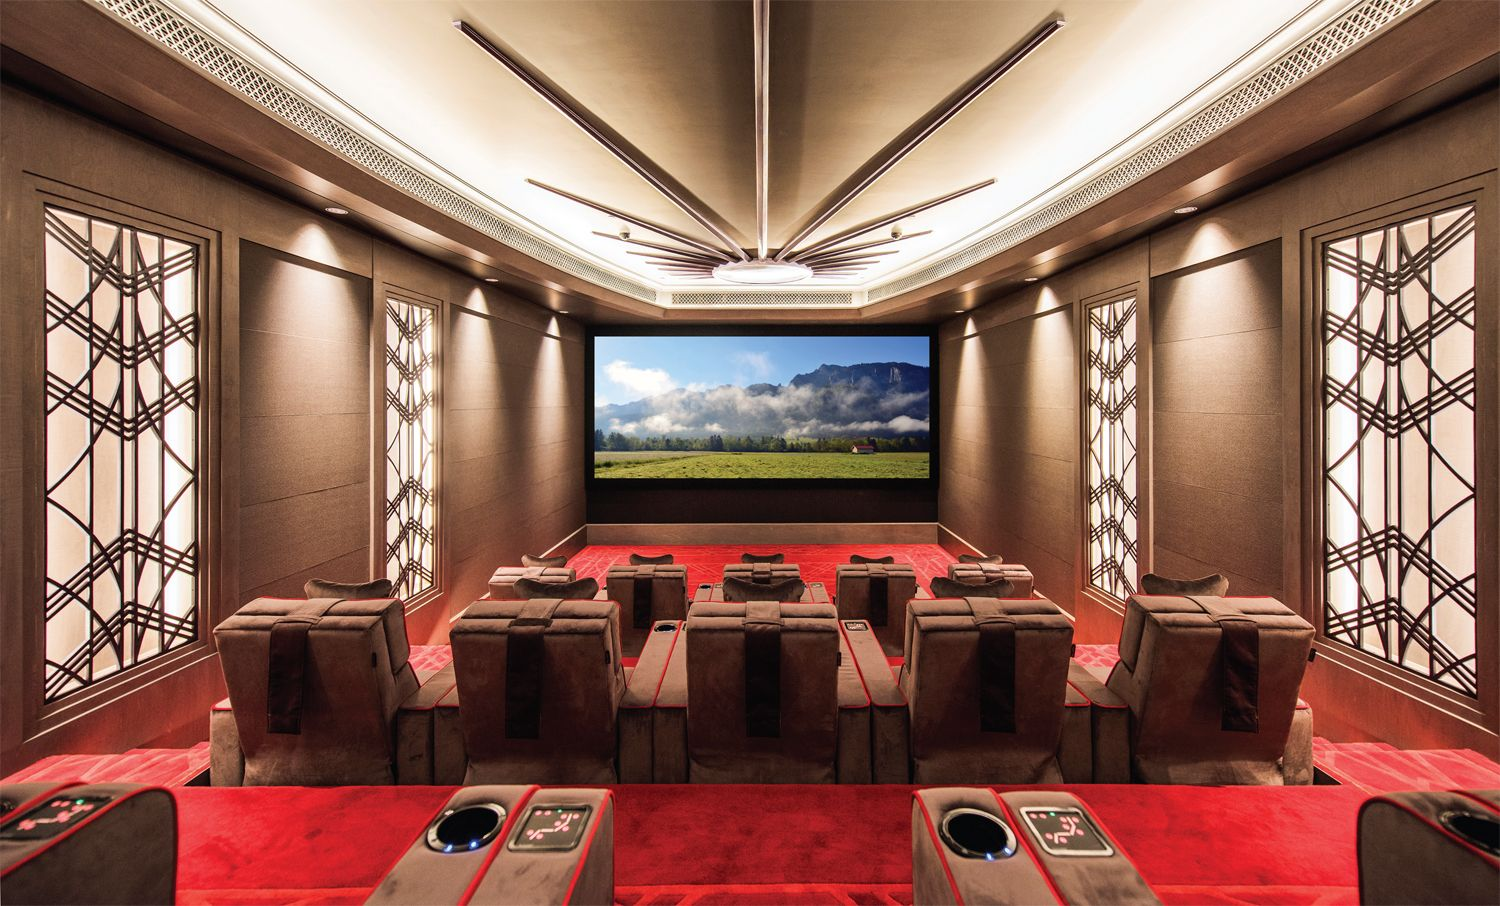 Awards 2015 Winner In Best Home Cinema Over MACBEE Pvt Ltd India An Elegant And Well Thought Out Room Which Exceeds The Clients Expectations